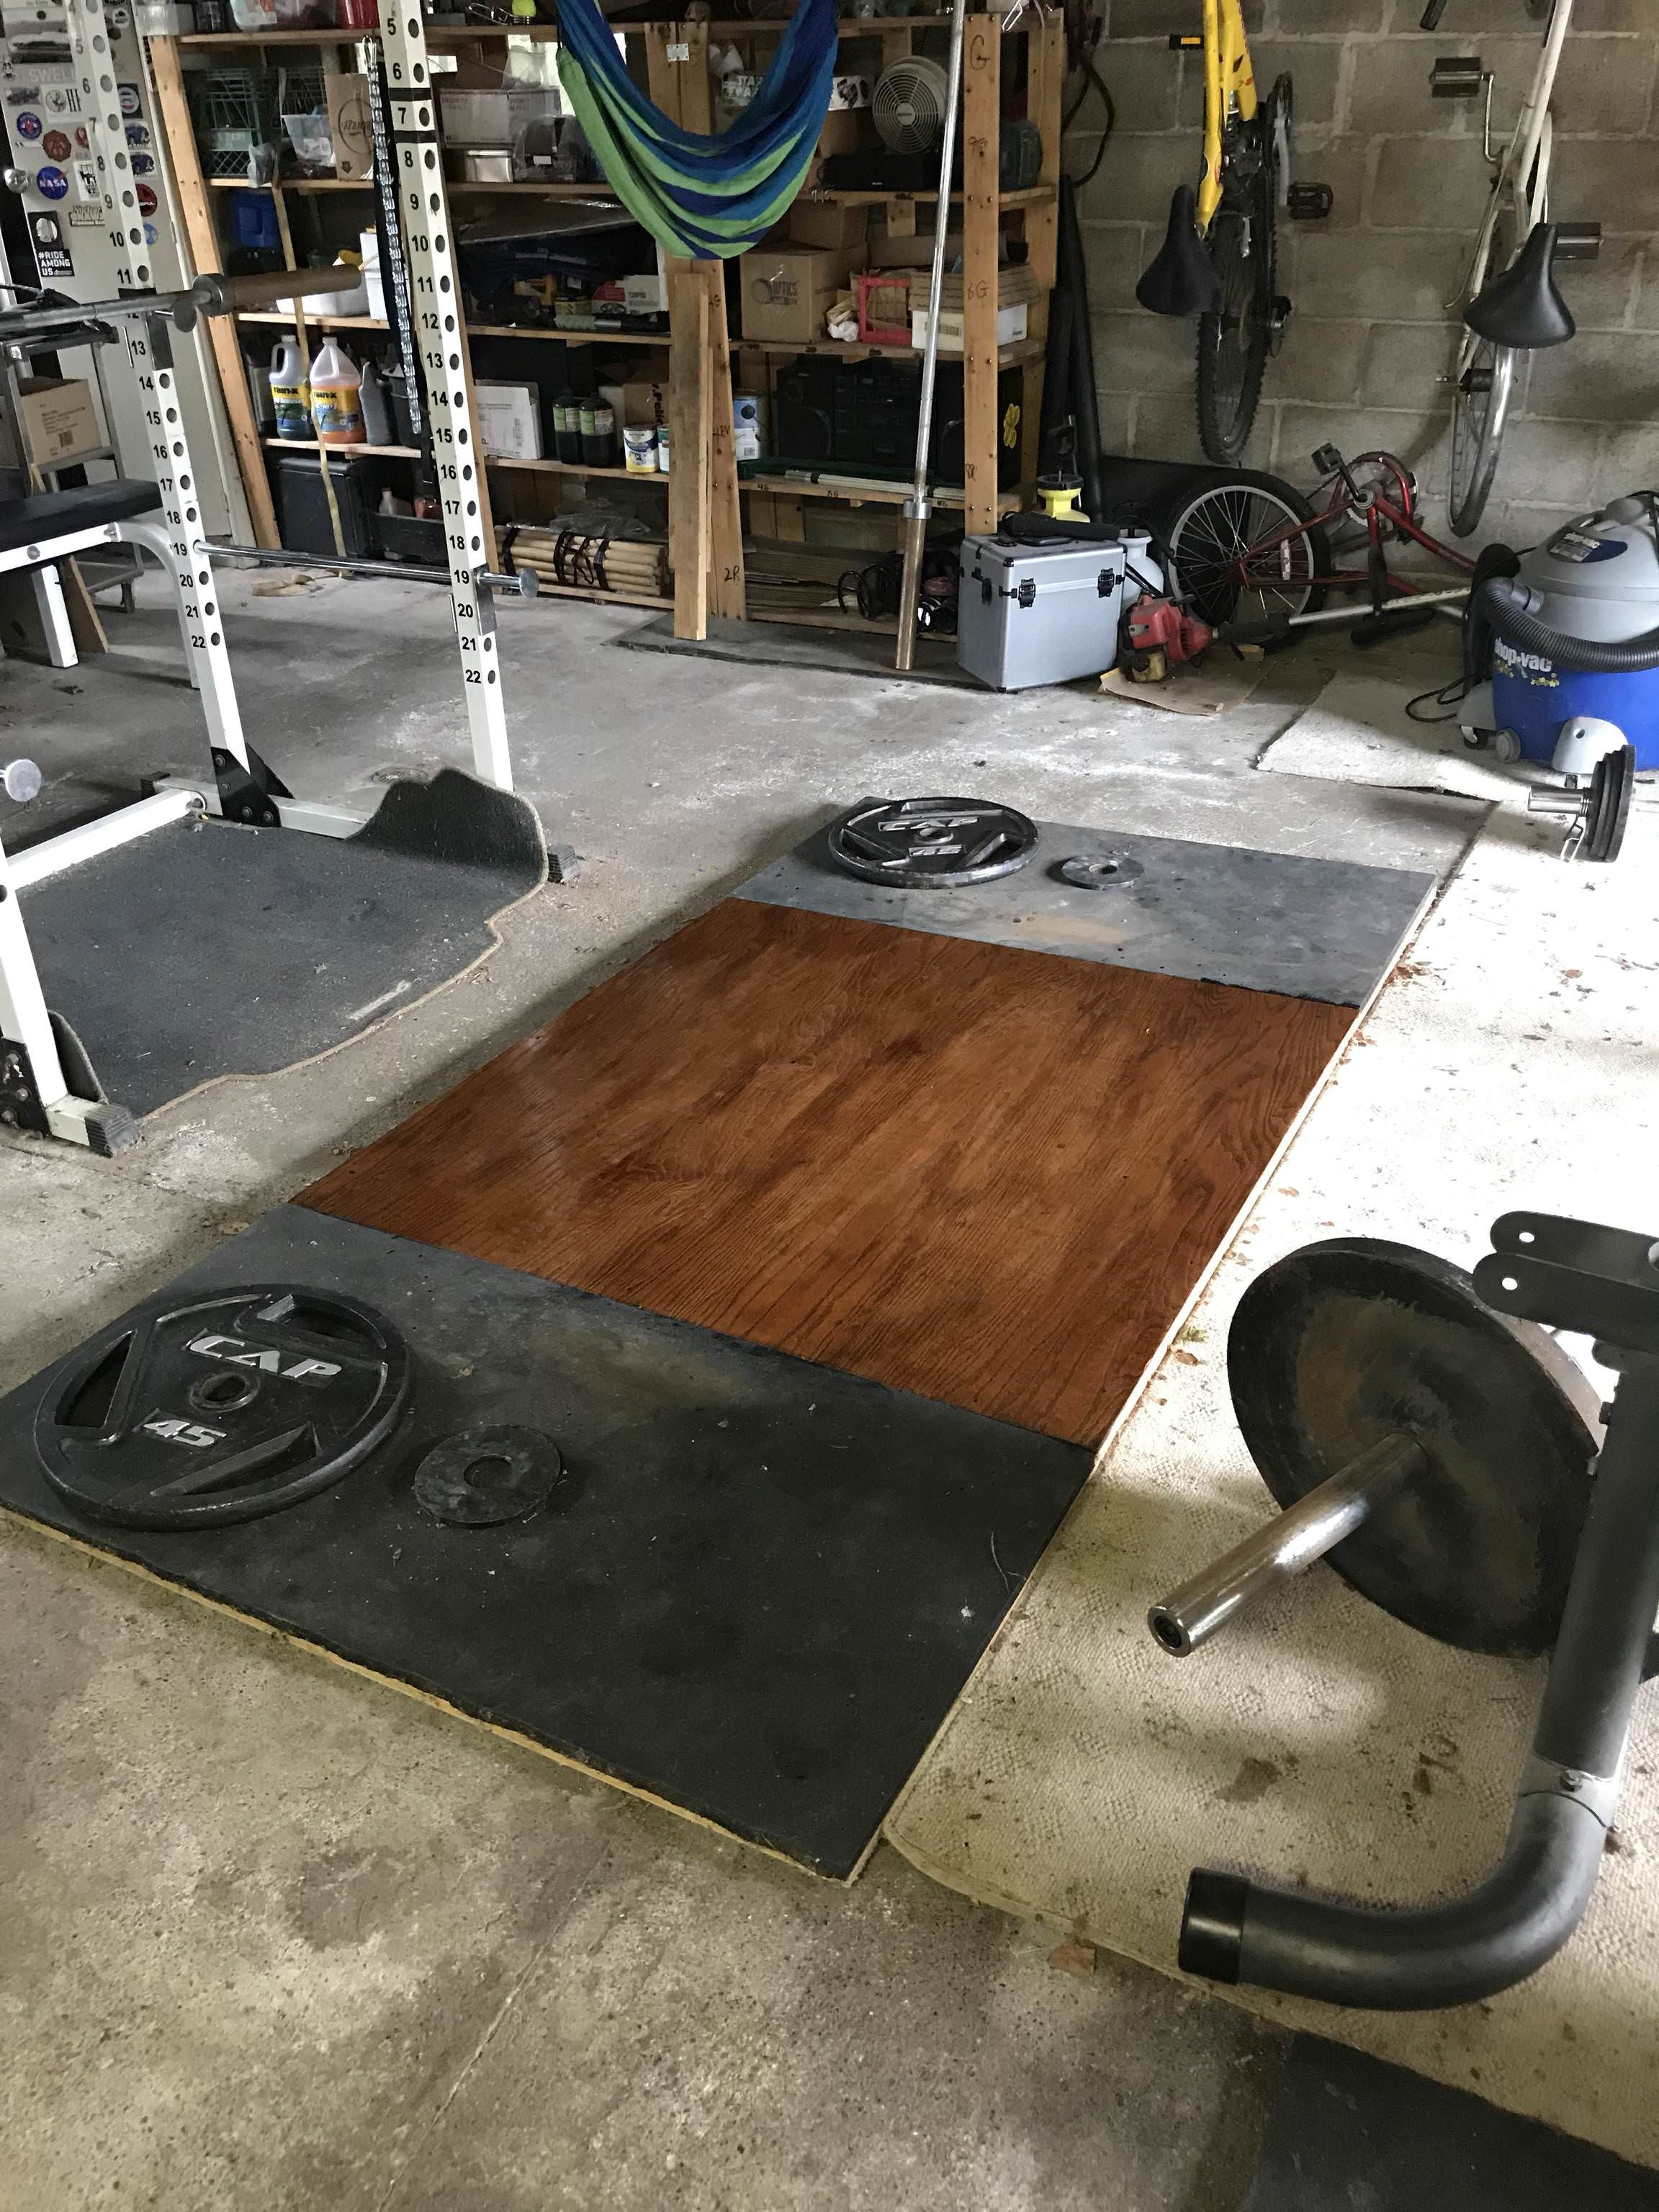 First steps towards decorating my platform home gym at home